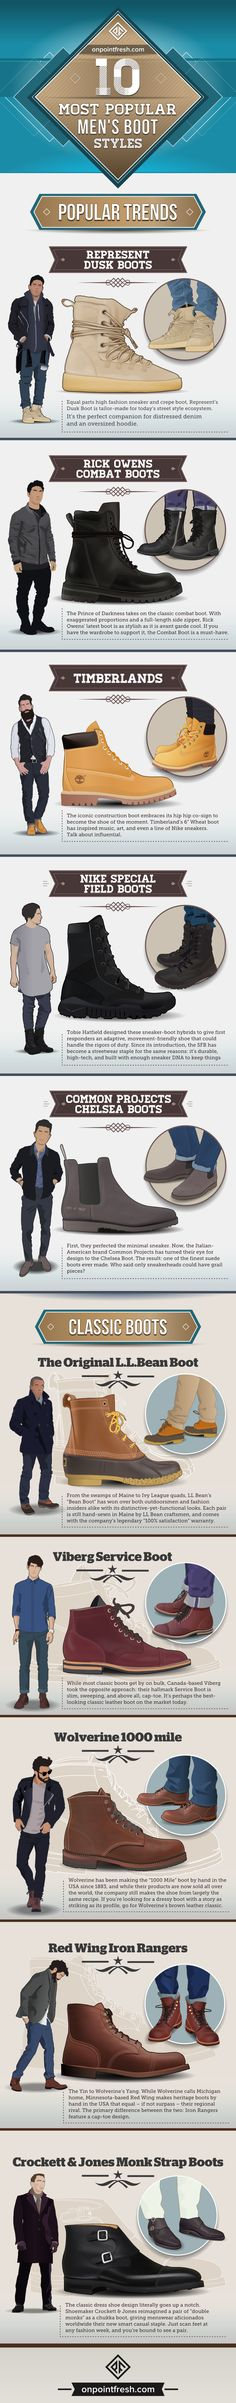 Fashion infographic A Visual Guide To Stylish Men's Boots is part of Fashion boots - Fashion infographic & data visualisation A Visual Guide To Stylish Men's Boots Infographic Description mens boots infographic Find your Inspiration @ Der Gentleman, Gentleman Style, Fashion Boots, Mens Fashion, Fashion Top, Fashion Check, Best Boots For Men, Men Boots, Fashion Infographic